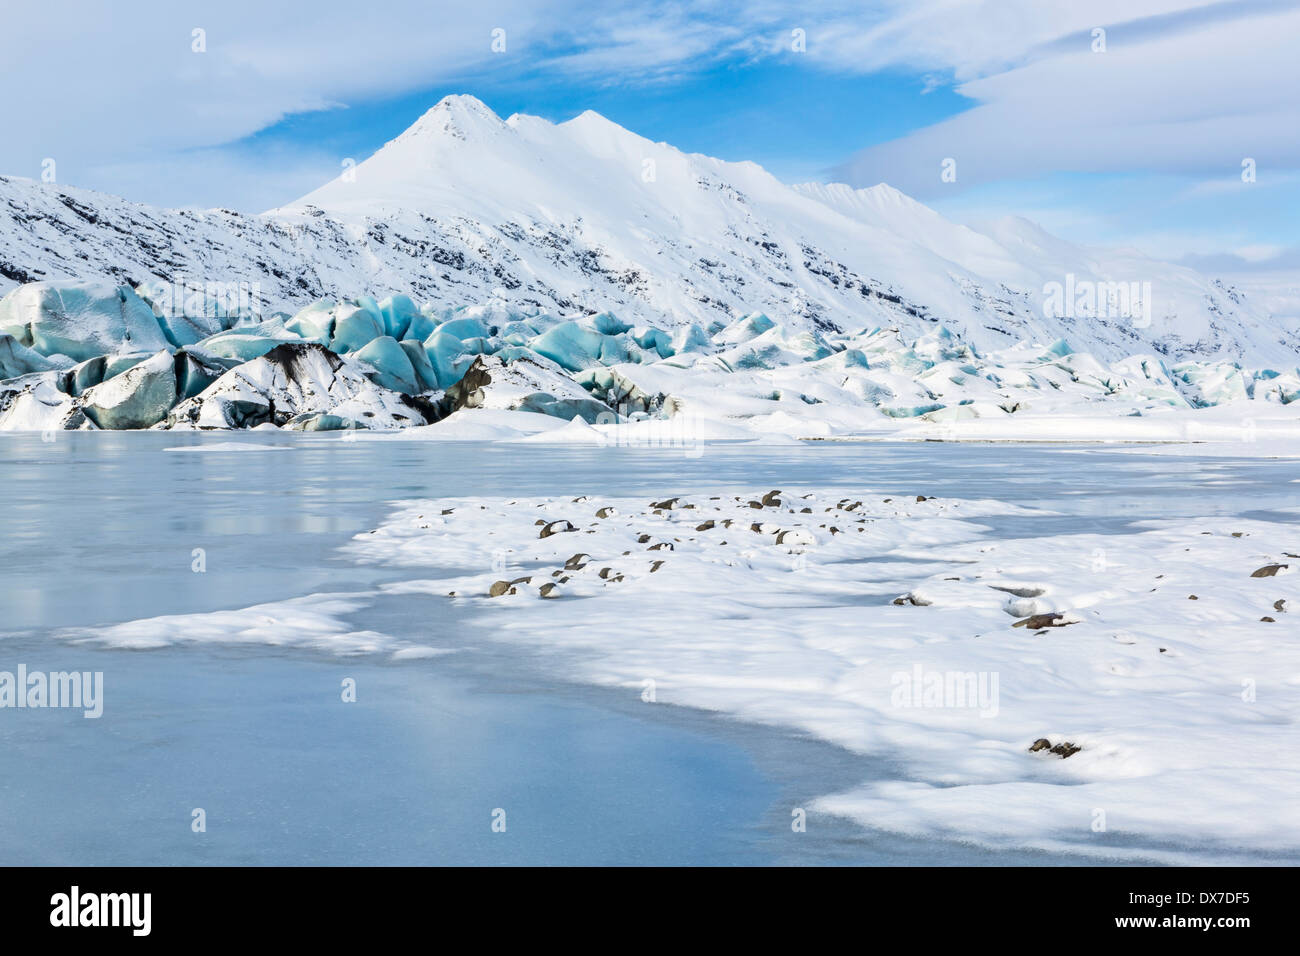 The aqua blue tongue of Heinabergs glacier and frozen glacial lagoon in Southeast Iceland near Hofn - Stock Image